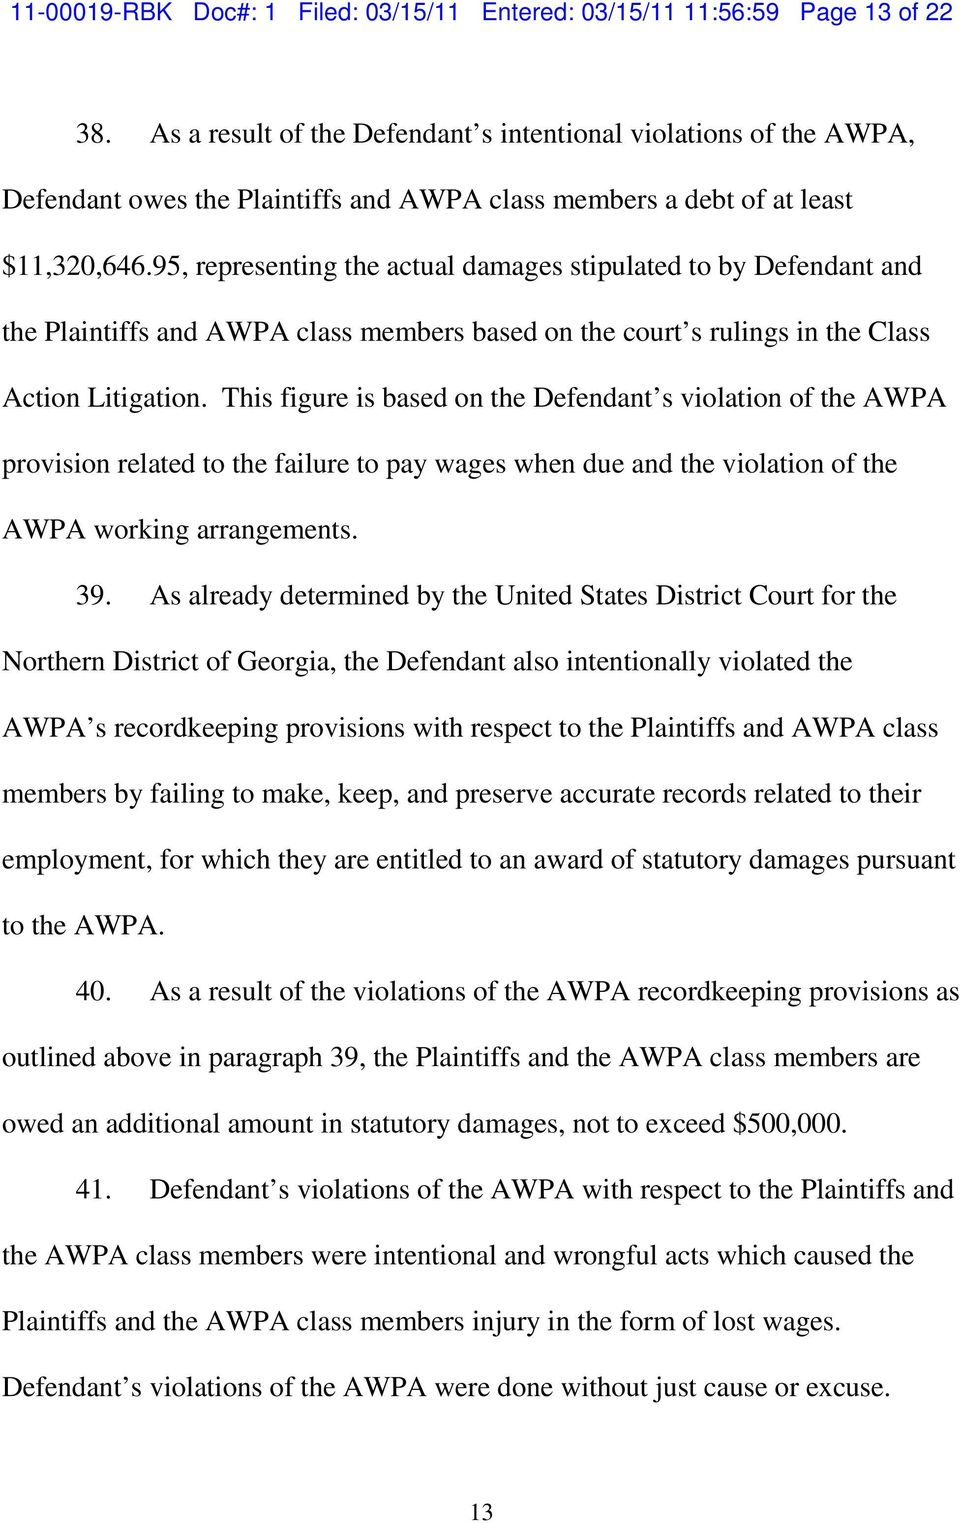 95, representing the actual damages stipulated to by Defendant and the Plaintiffs and AWPA class members based on the court s rulings in the Class Action Litigation.